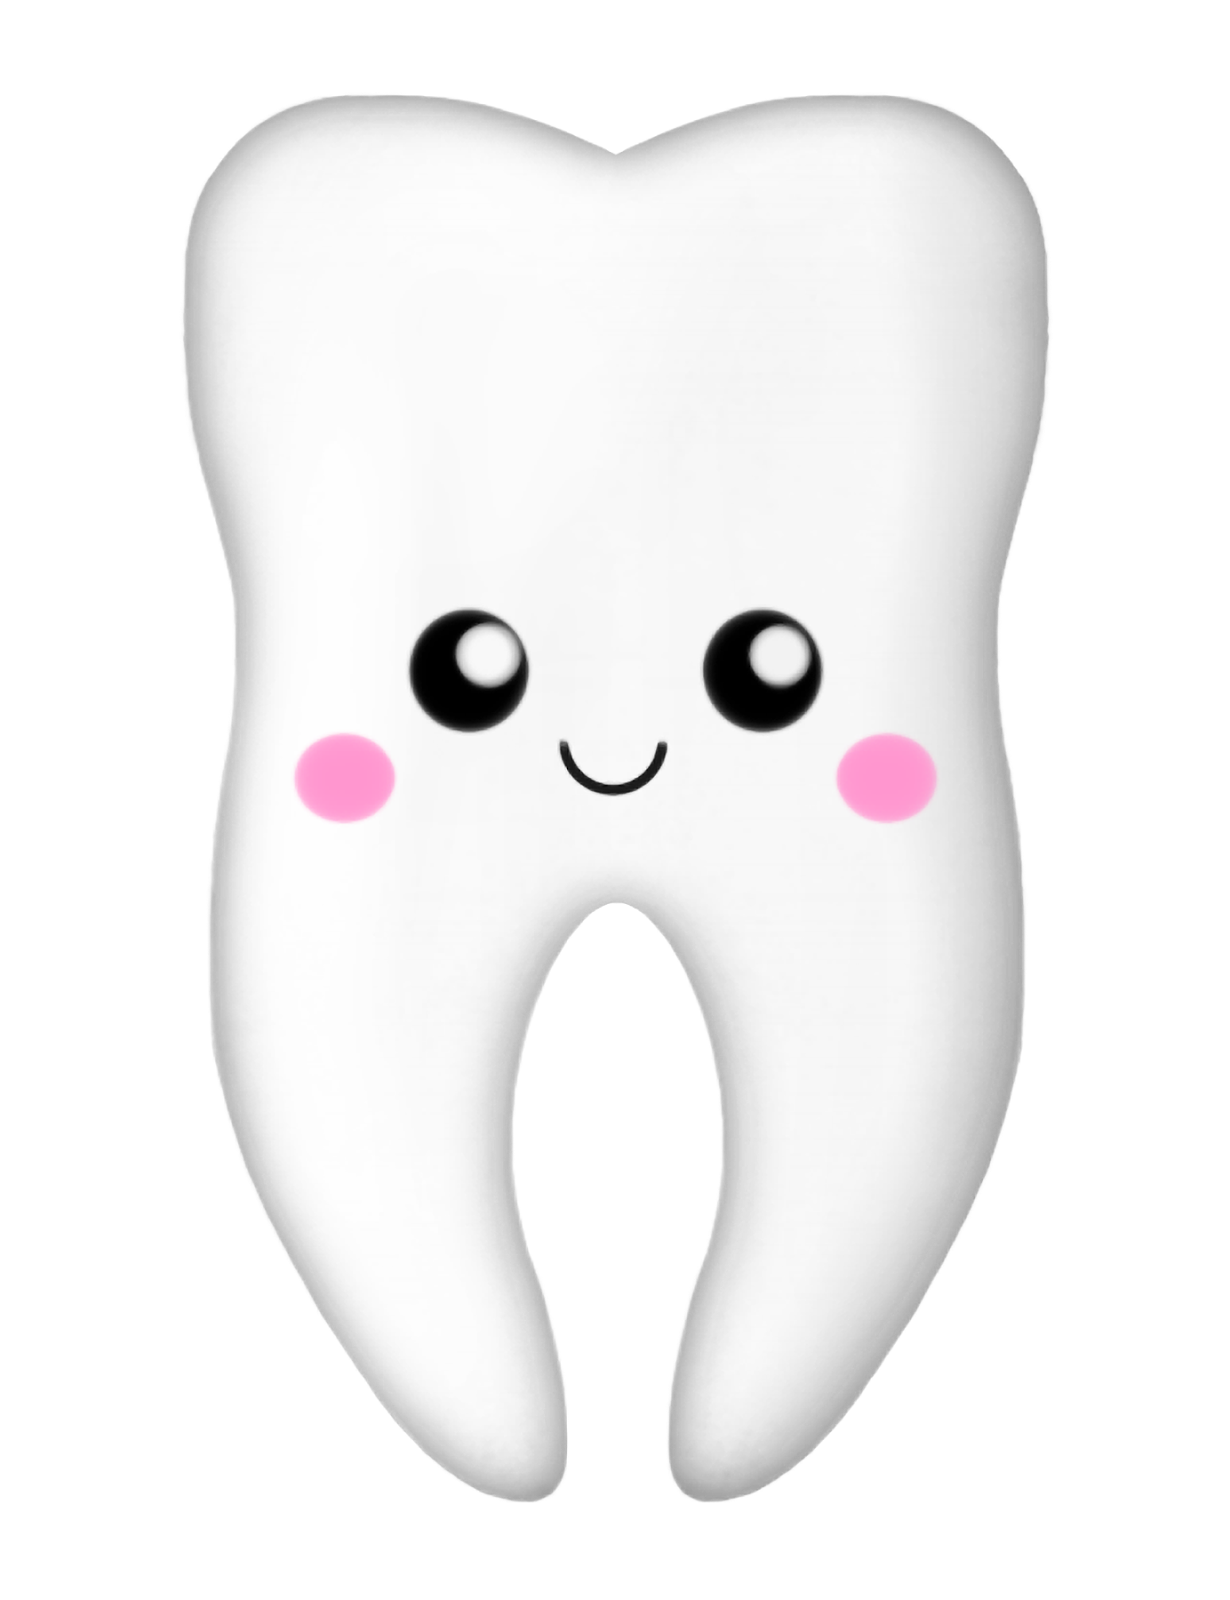 Tooth Clip Art, Tooth Free Clipart.